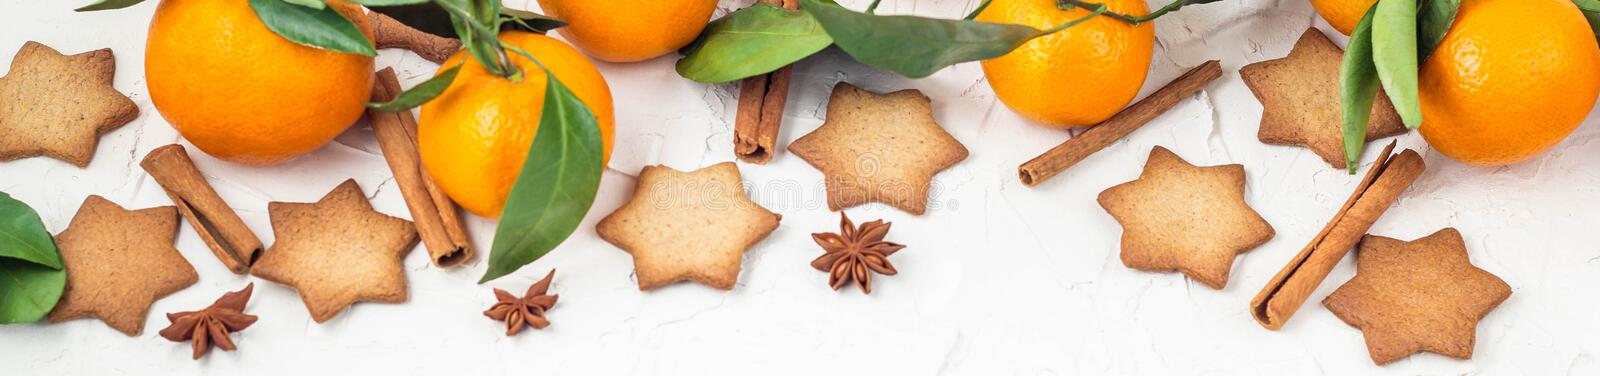 Border of Christmas star cookies with spices and mandarin on white background with copyspace. Top view, gingerbread, food, cinnamon, holiday, decoration royalty free stock images